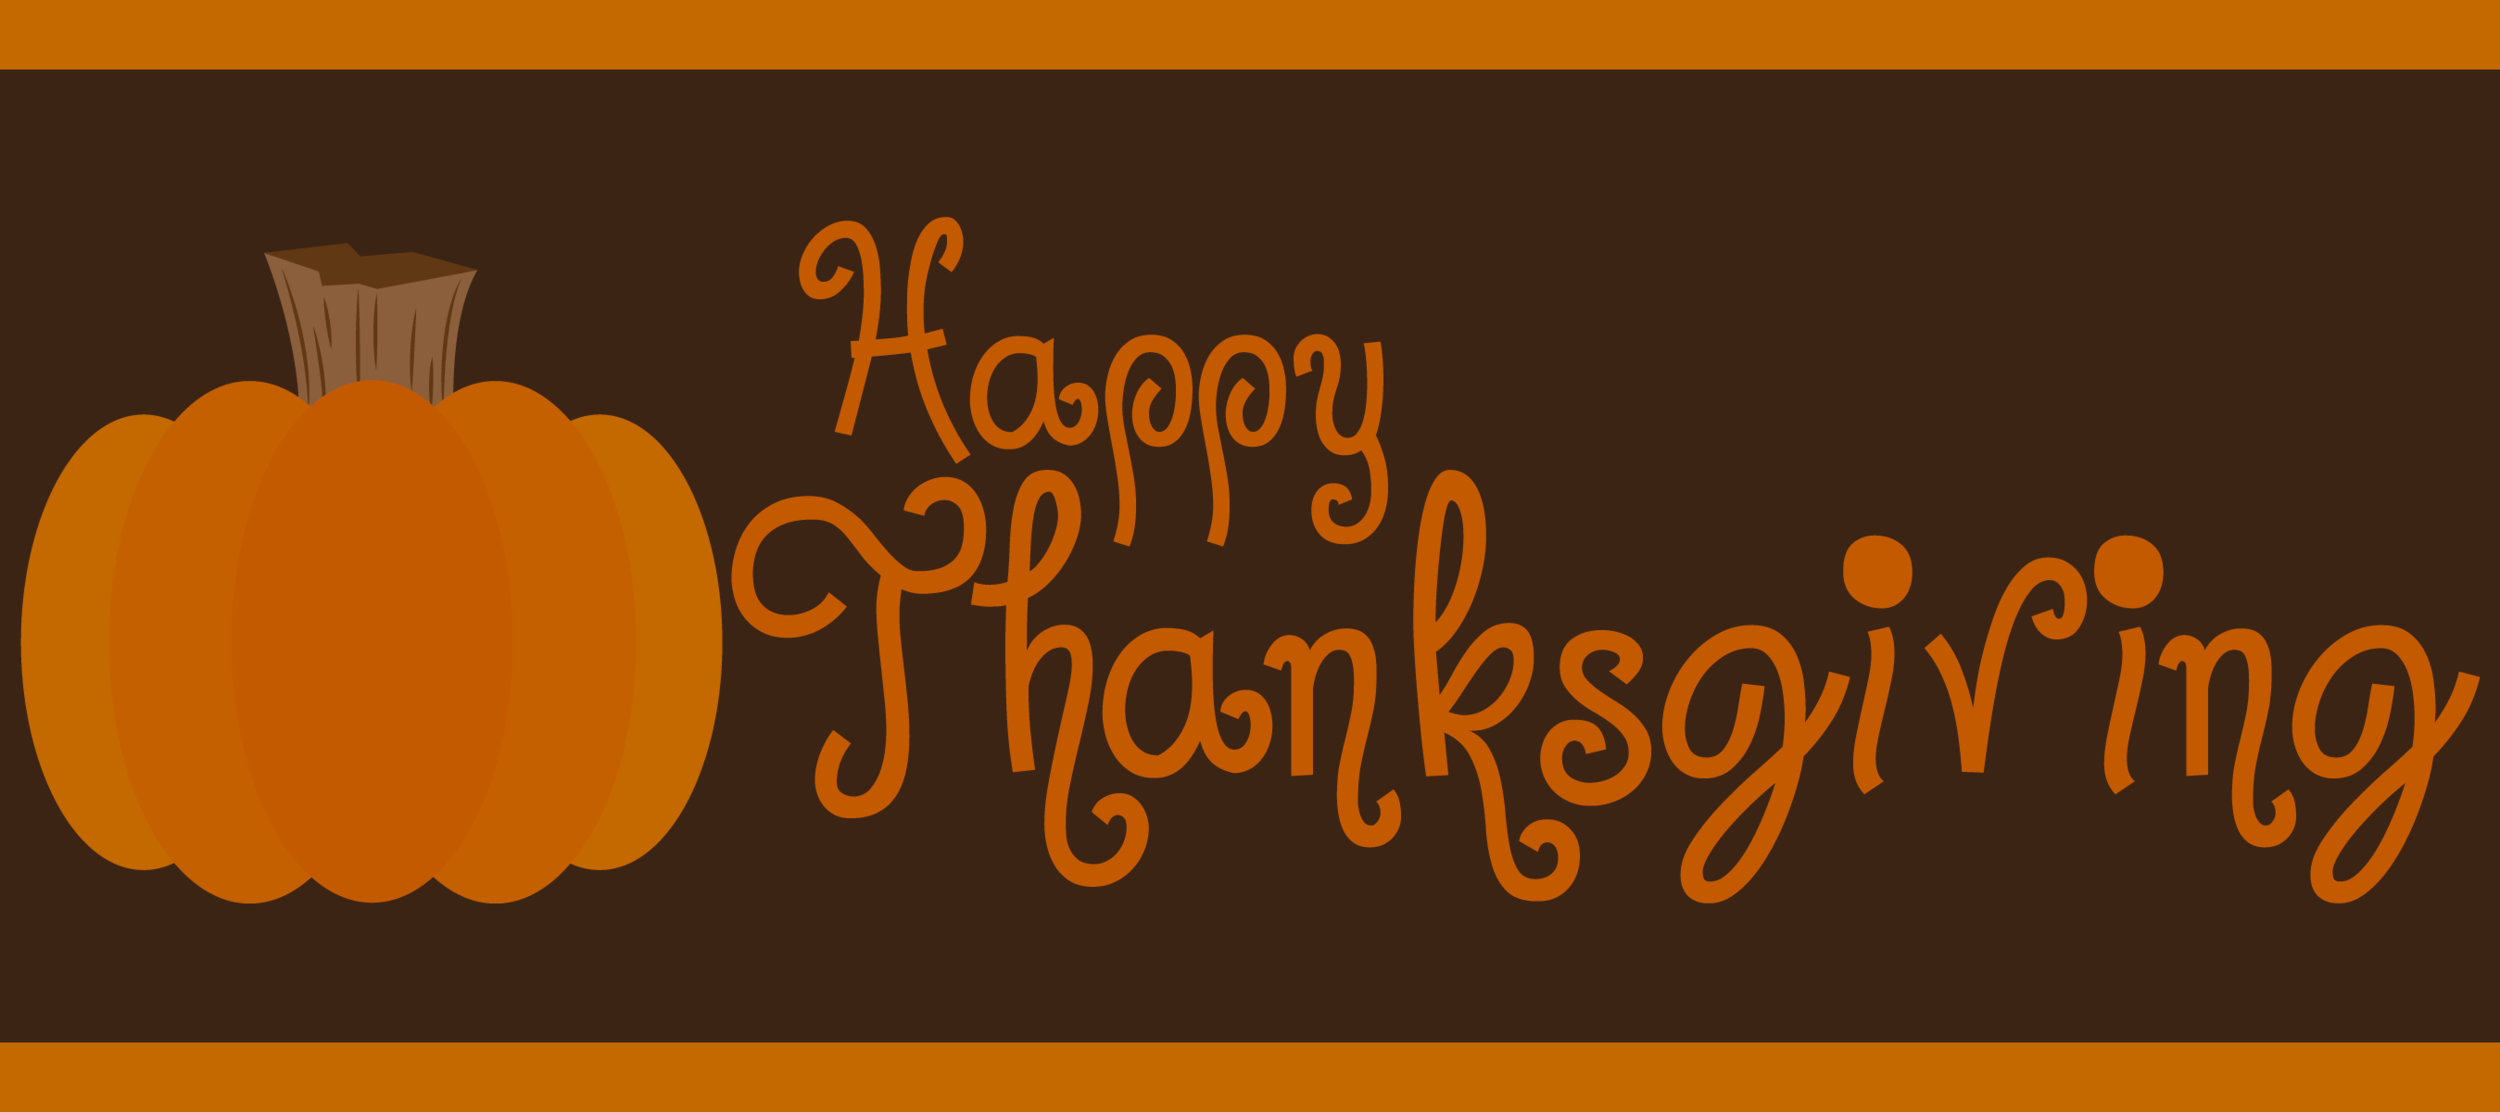 happy-thanksgiving-1842911 - Copy.png